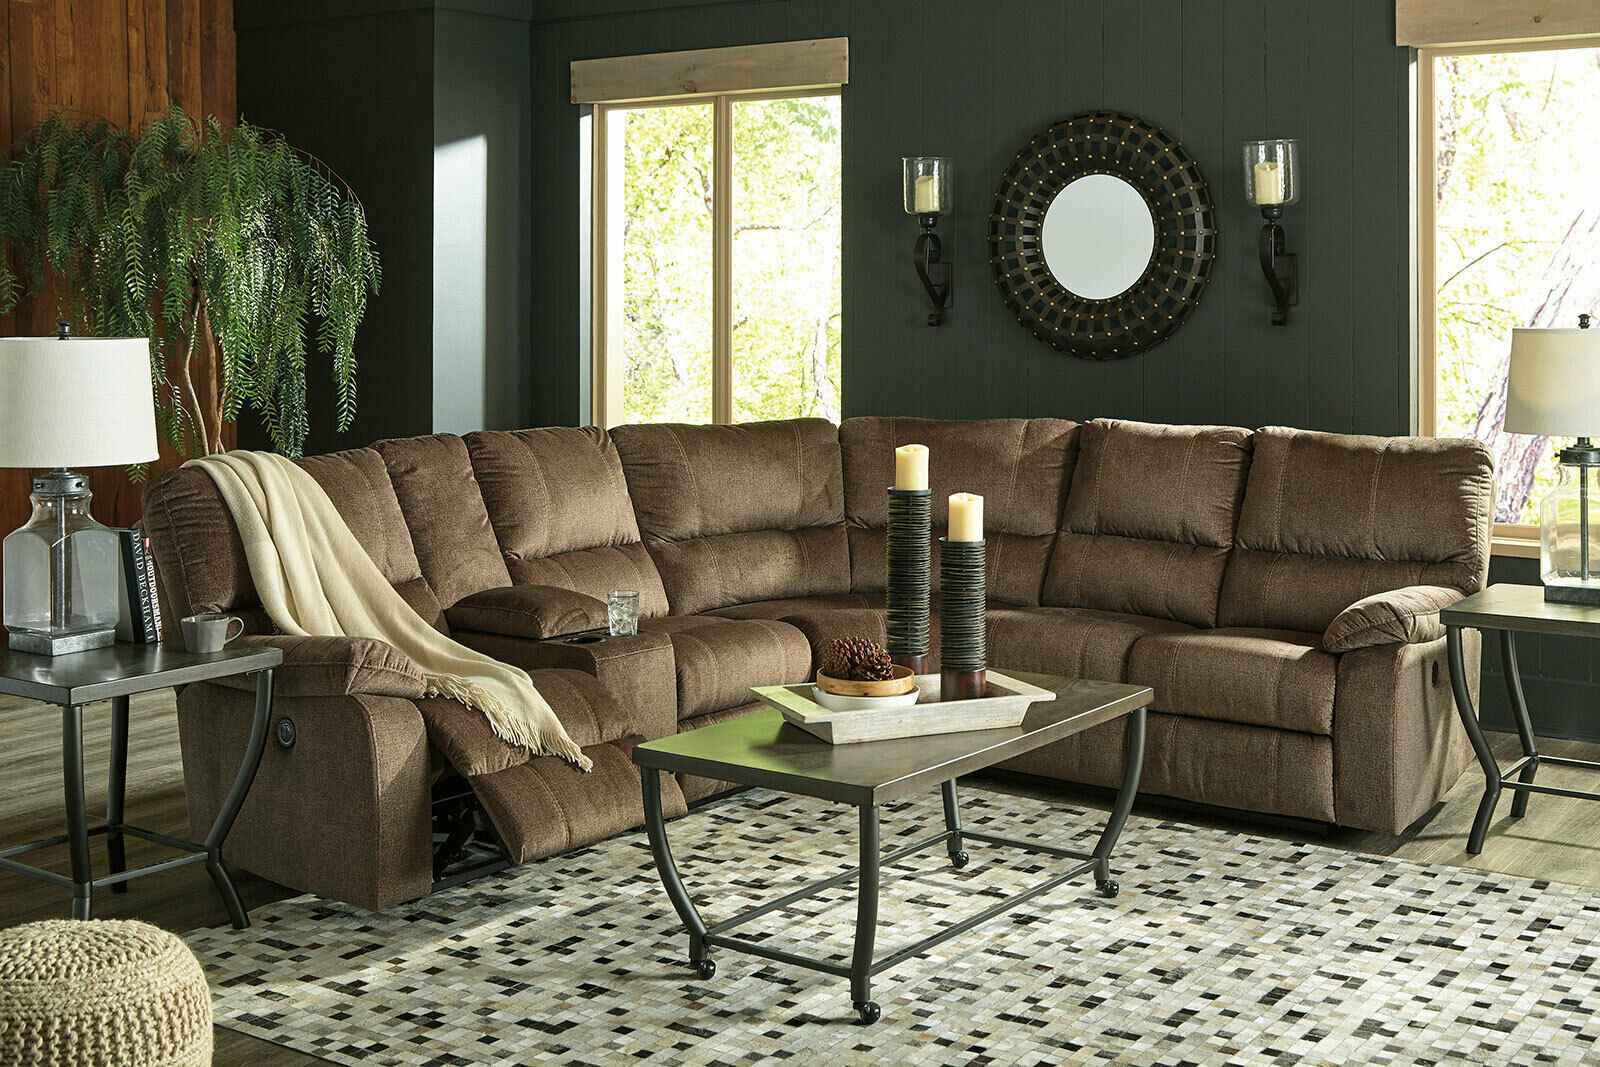 Modern living room sectional brown fabric reclining sofa - Fabric reclining living room sets ...